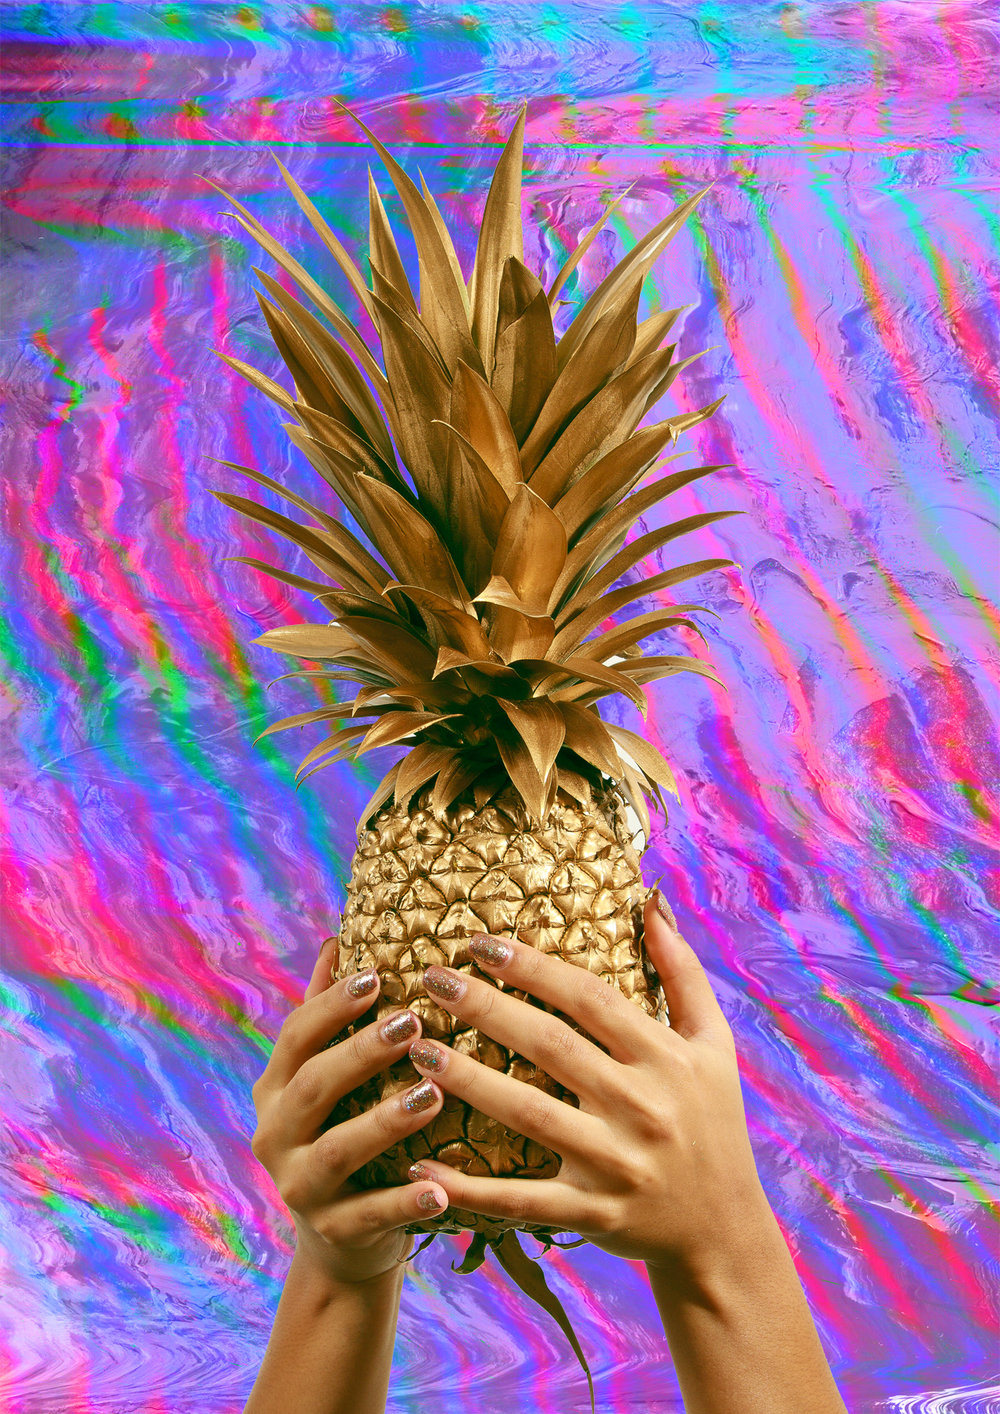 all hail pineapple v2.jpg